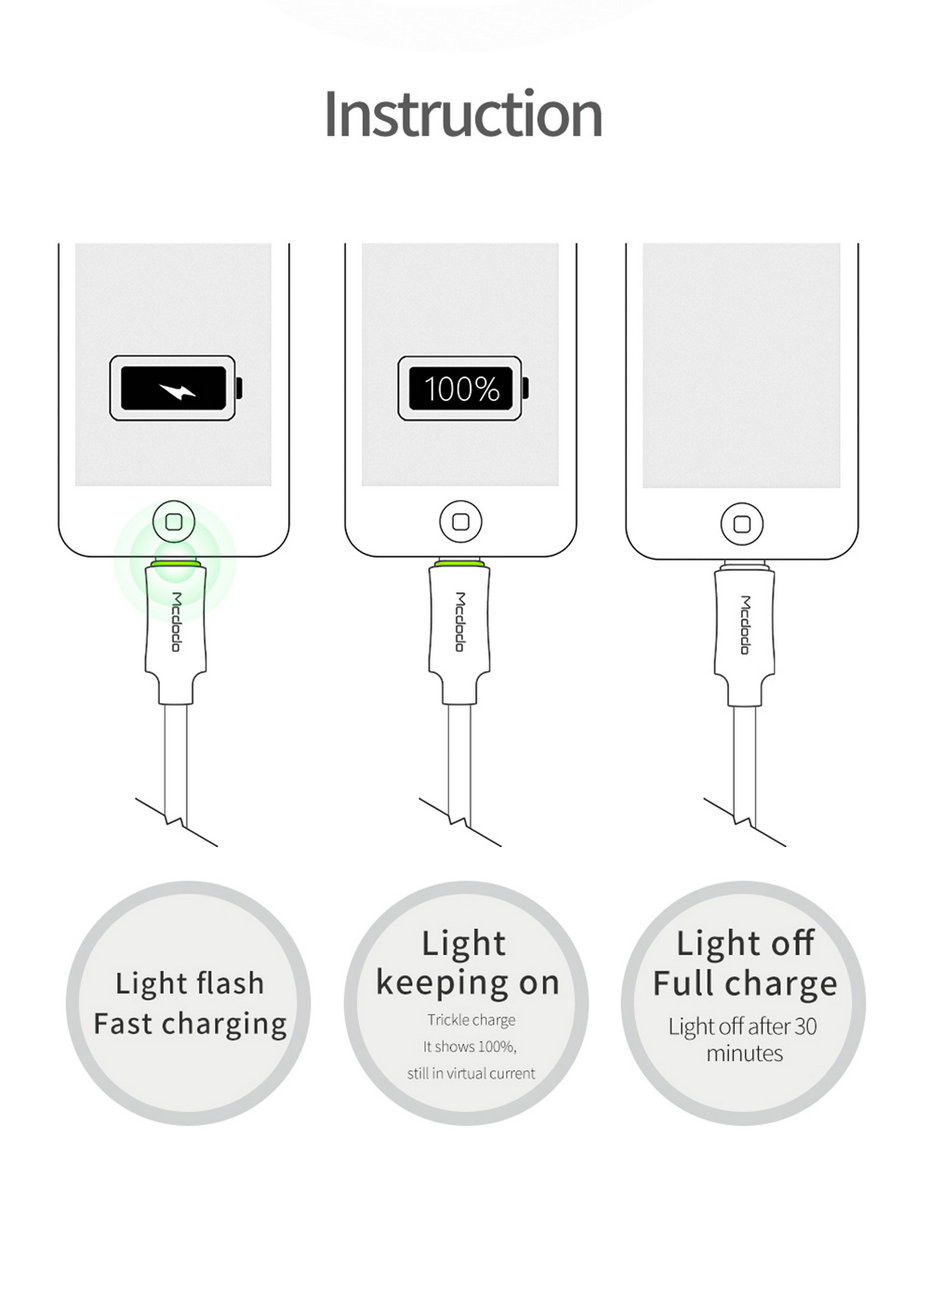 Mcdodo USB Cable for iPhone X 8 7 6 Plus Auto Disconnect Fast Charging Cord for iPhone 6s 5s SE iPad Sync Data USB Charger Cable (13)